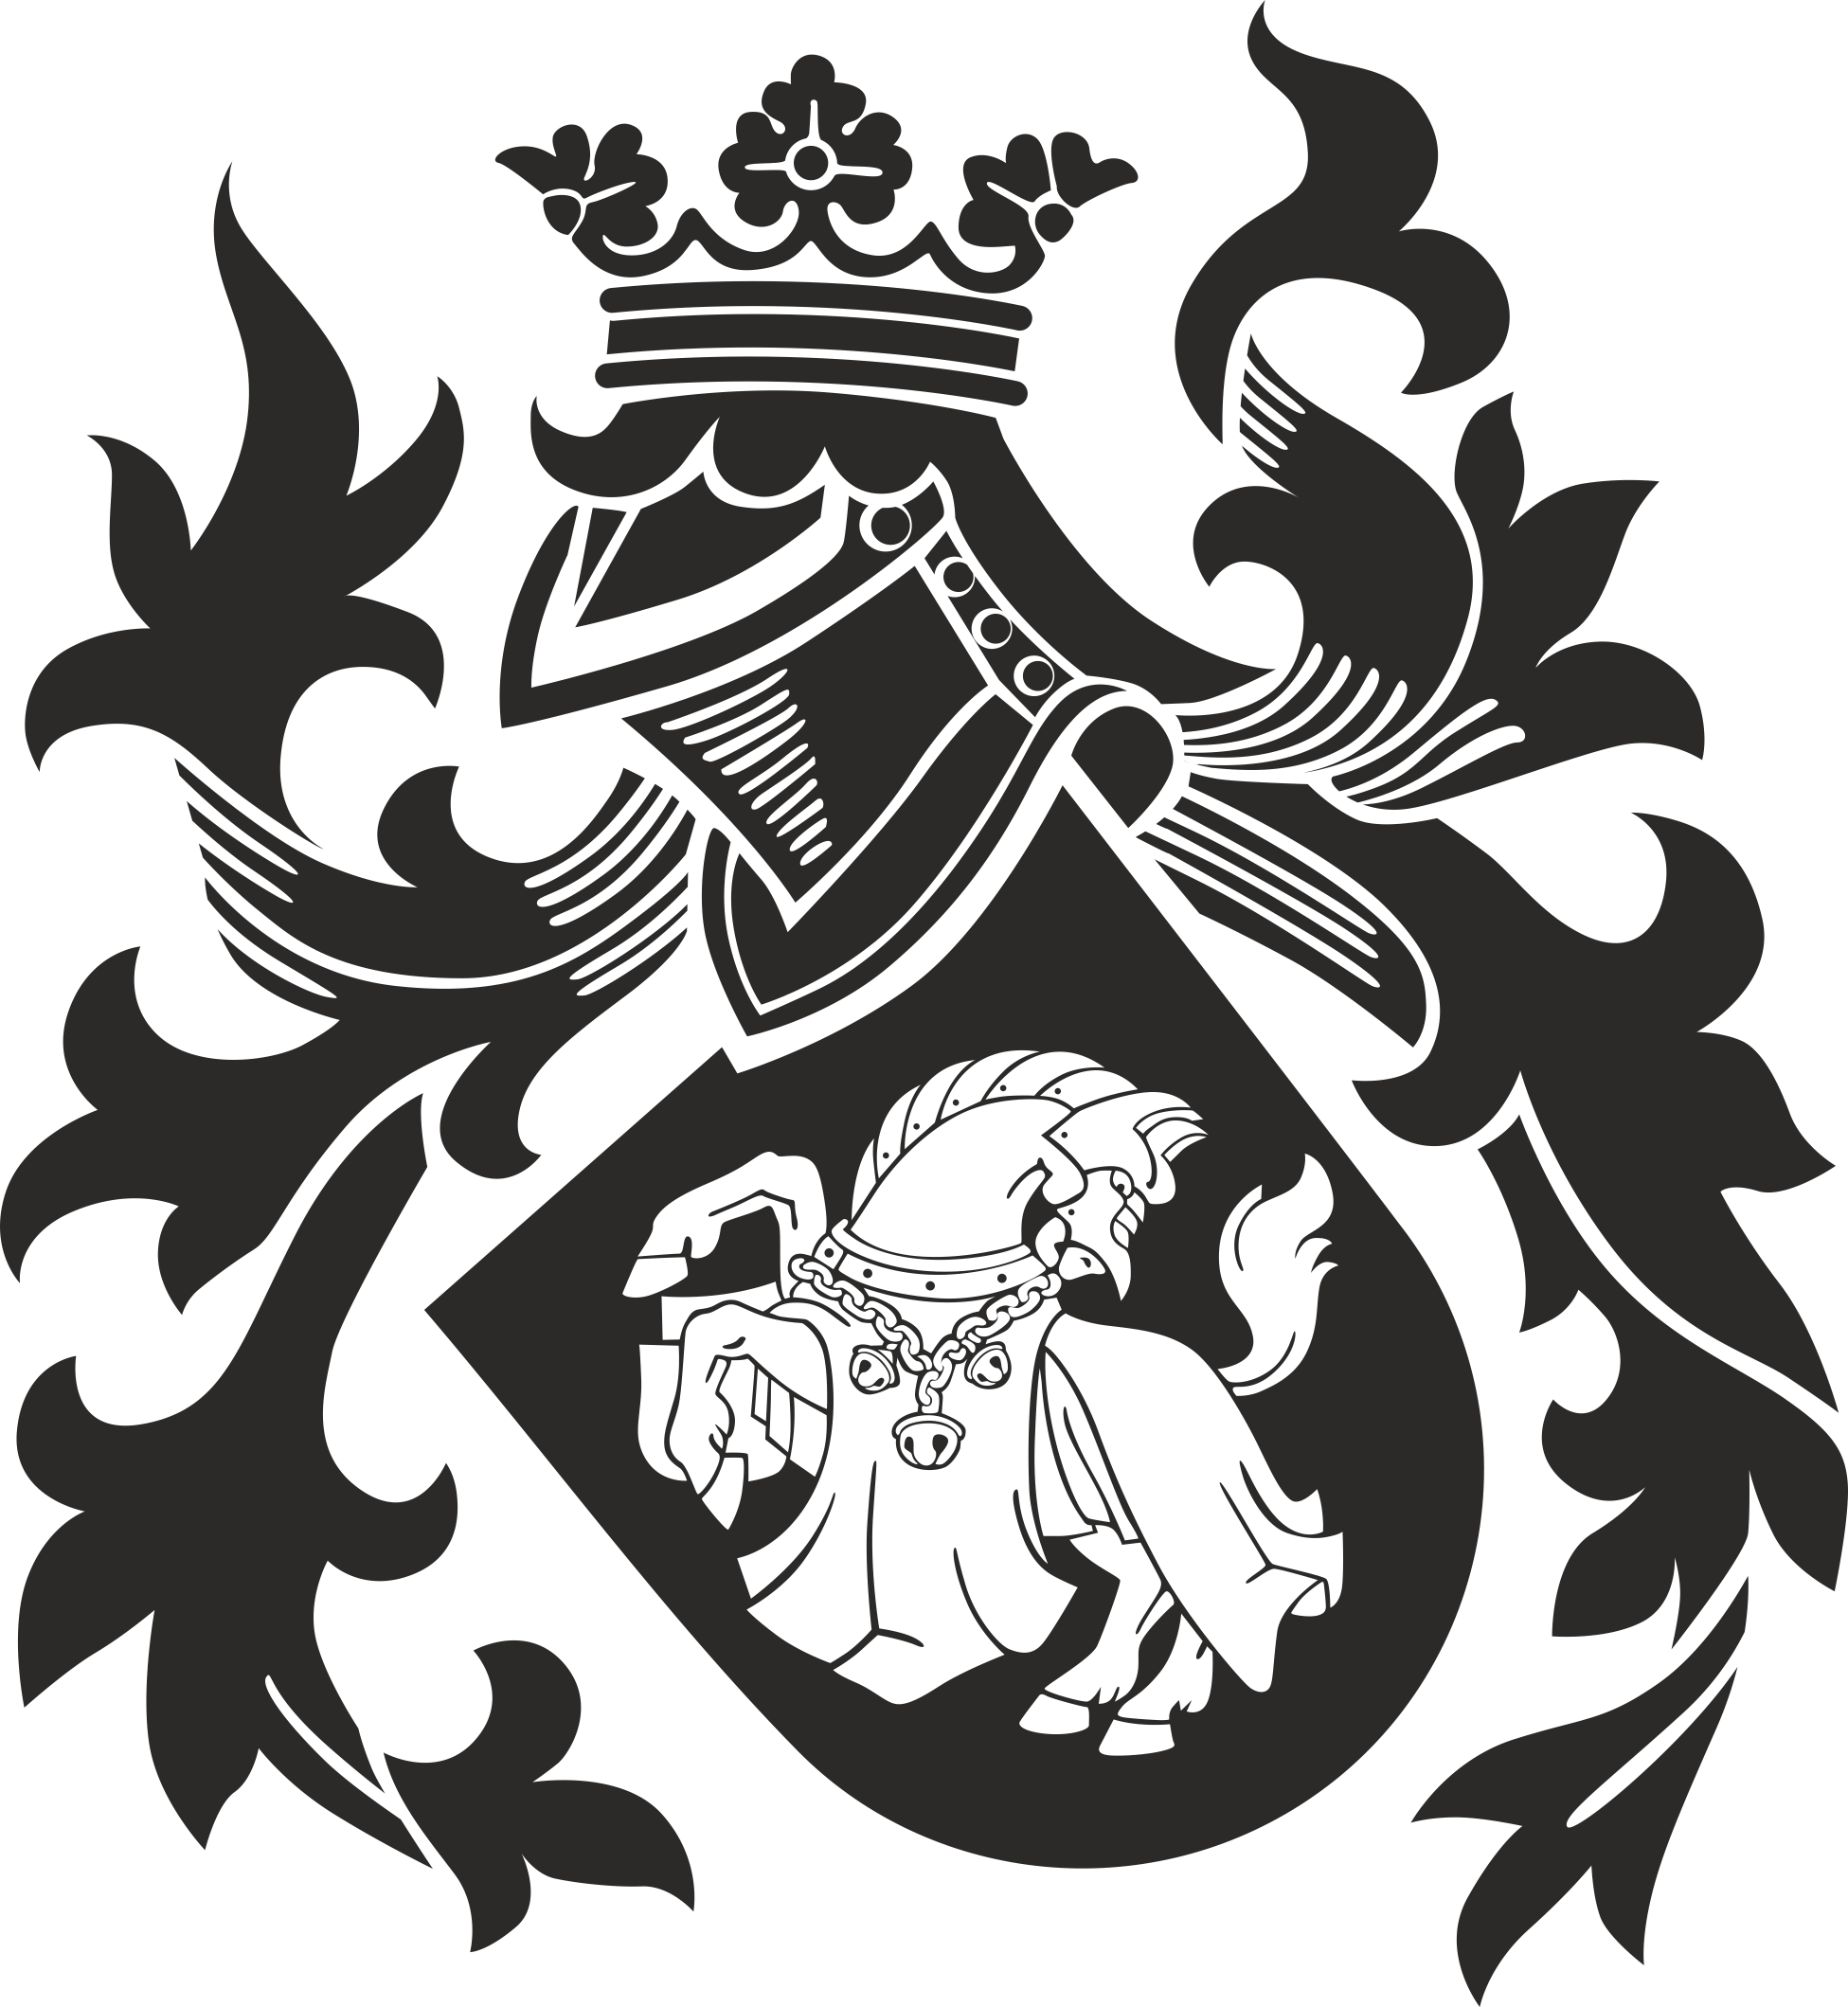 Heraldry Collection Clipart Vector 5-09 Free DXF File